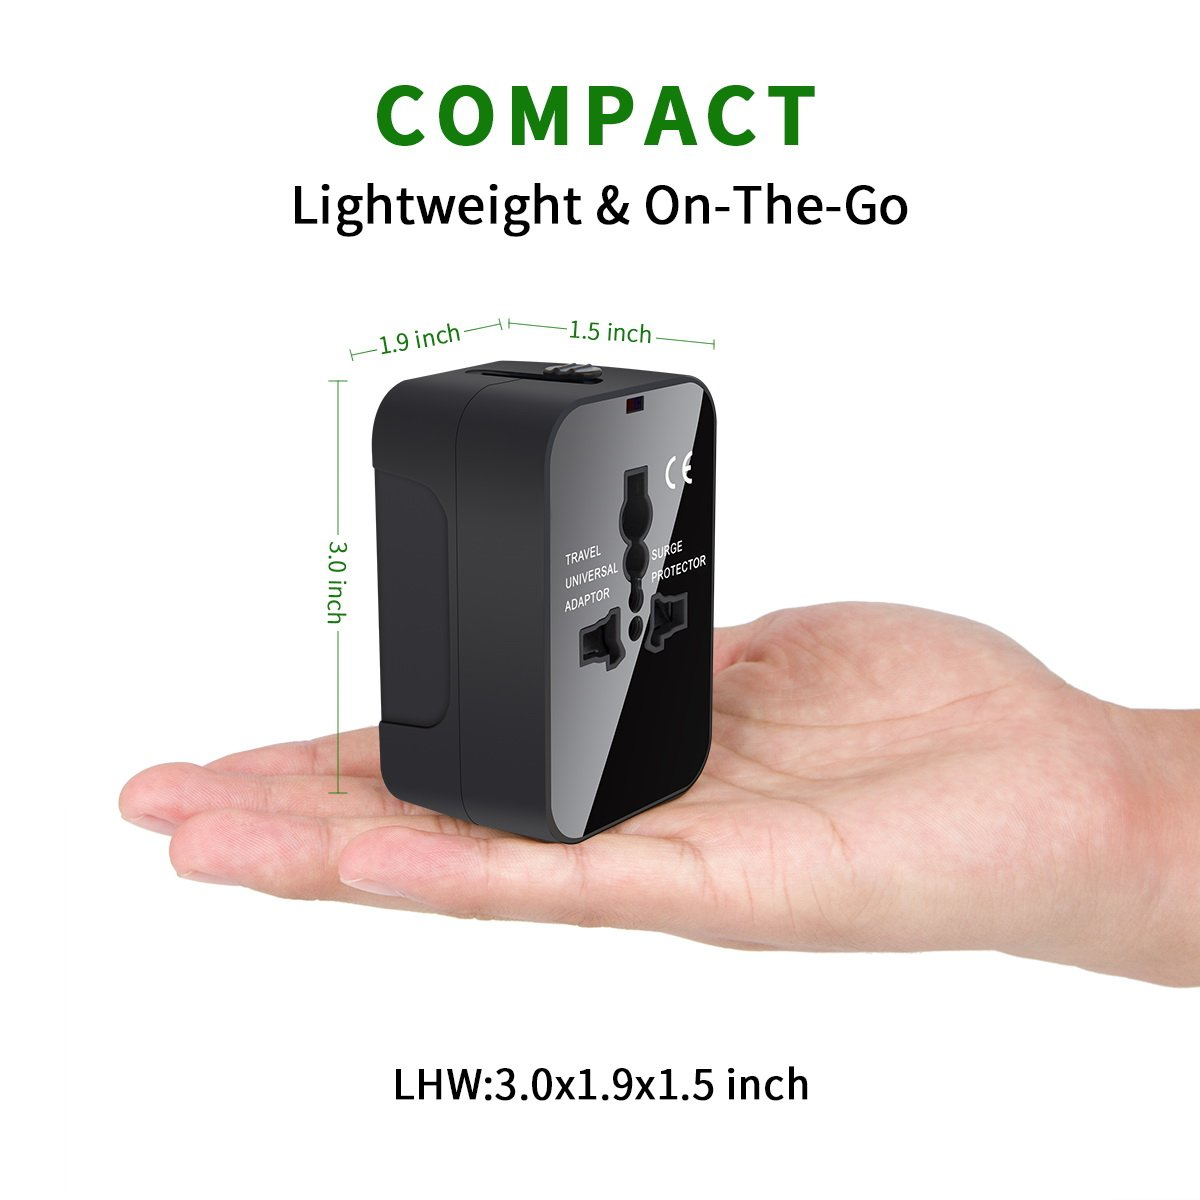 NEWVANGA International Universal All in One Worldwide Travel Adapter Wall Charger AC Power Plug Adapter with Dual USB Charging Ports for USA EU UK AUS European Cell Phone Laptop by NEWVANGA (Image #4)